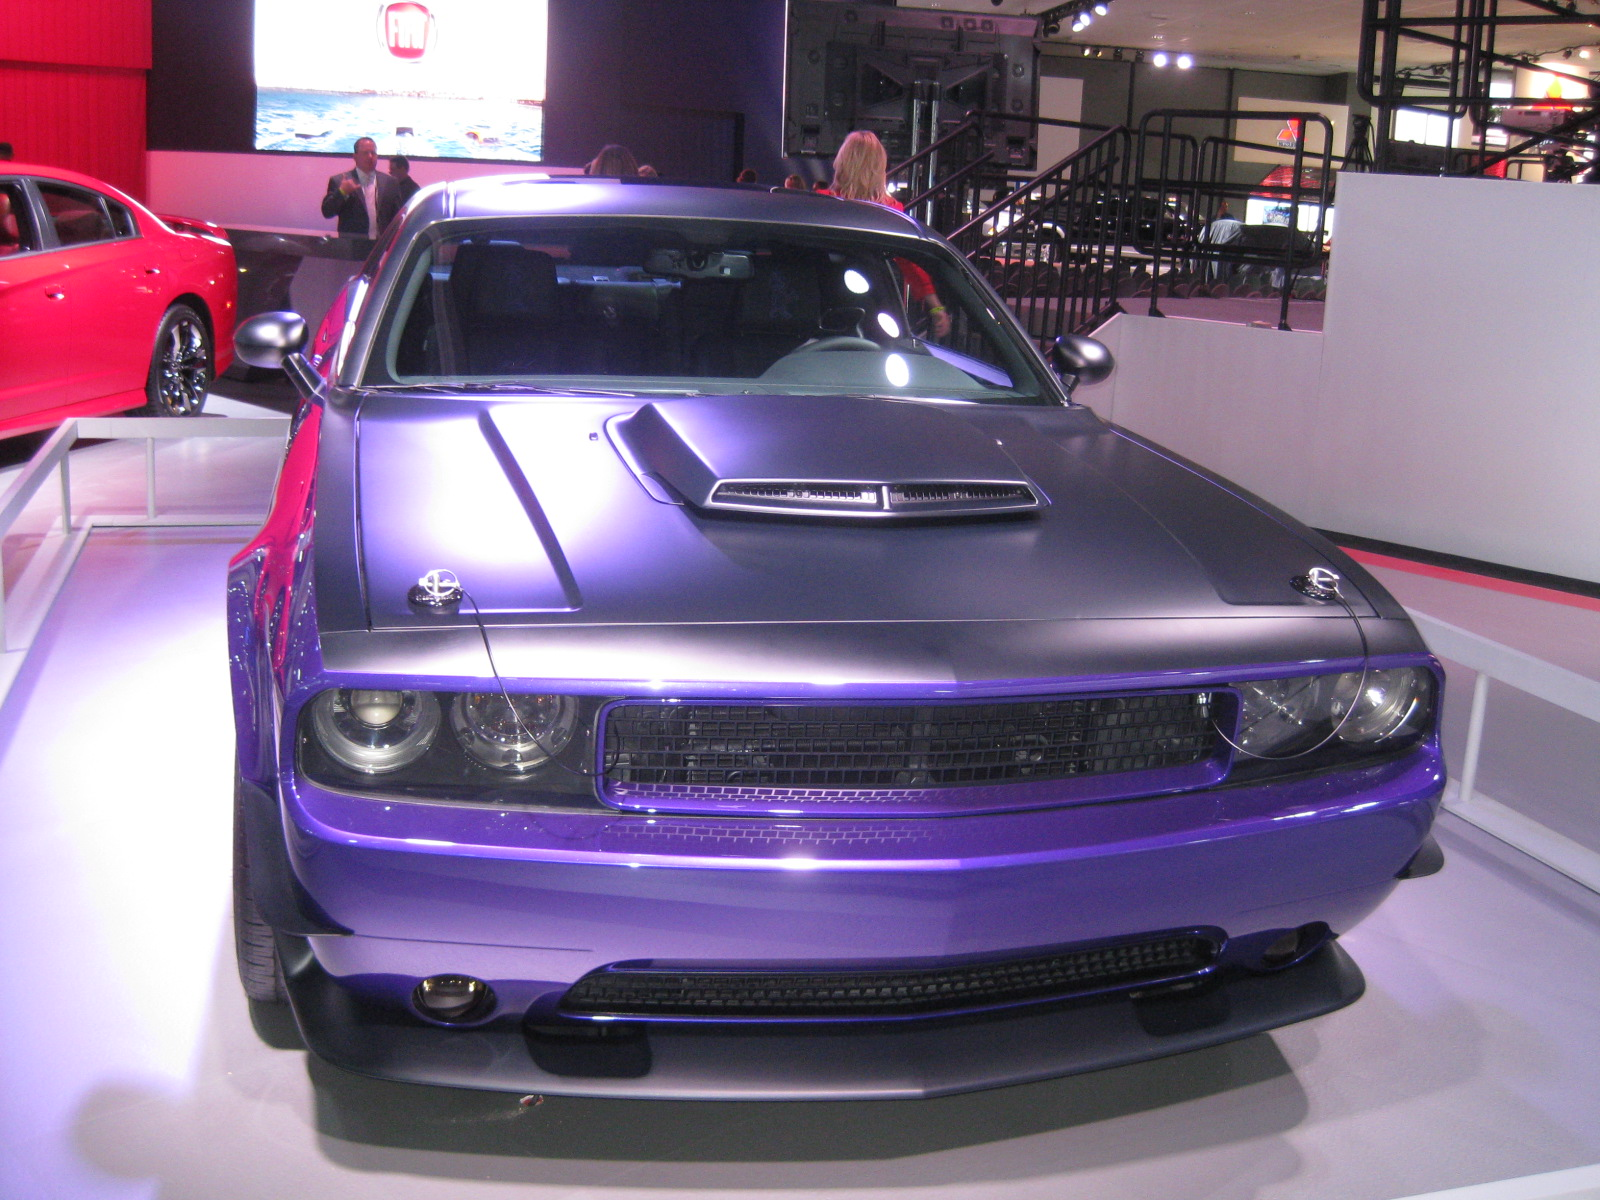 Kelly Auto Sales >> Chrysler Group – Mopar Concept Car Dodge Challenger in Purple | Todd Bianco's ...